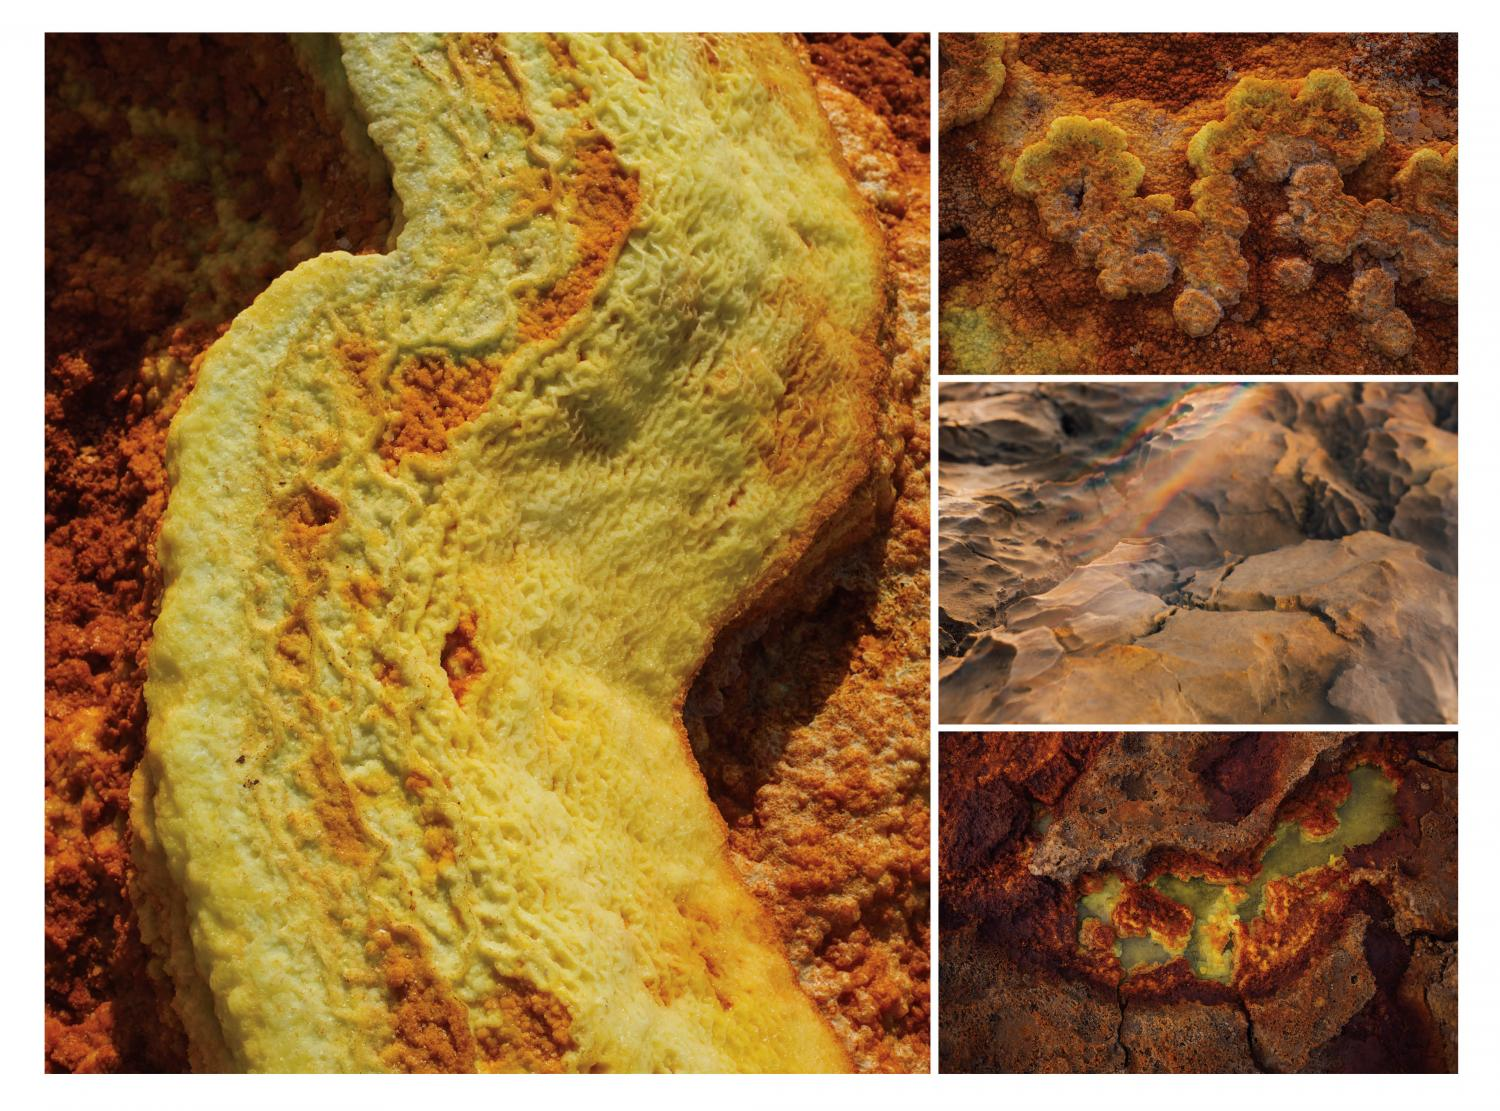 Left: Textures formed by the dried salt create patterns around the sulfur pools in Dallol, Ethiopia. RIGHT: Textures formed by dried salt create endless patterns on the ground (top) and sharp crystalline edges (middle). bottom: Pools of acidic, sulfiric water form in the cracks created between the dried salt. Photograph by Alex Pritz.